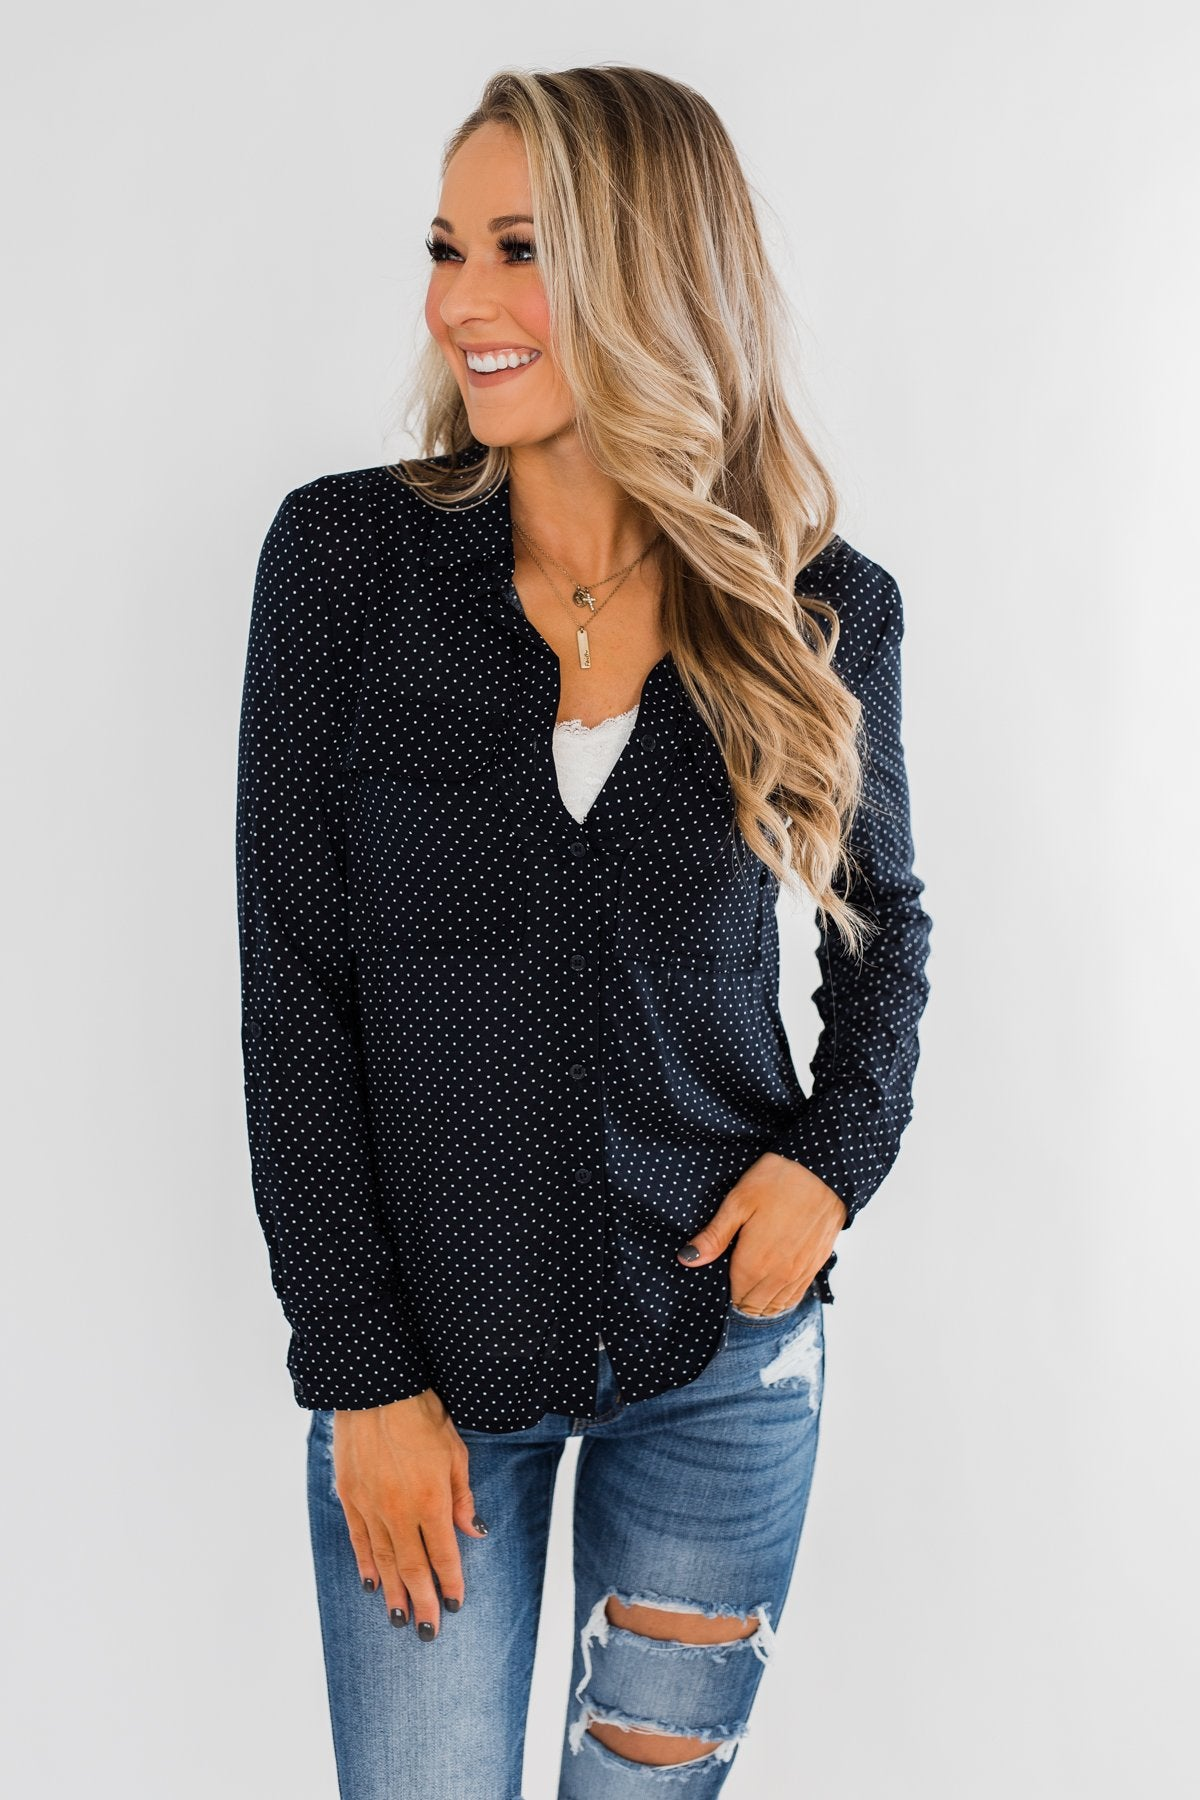 Perfect For Me Polka Dot Blouse- Navy